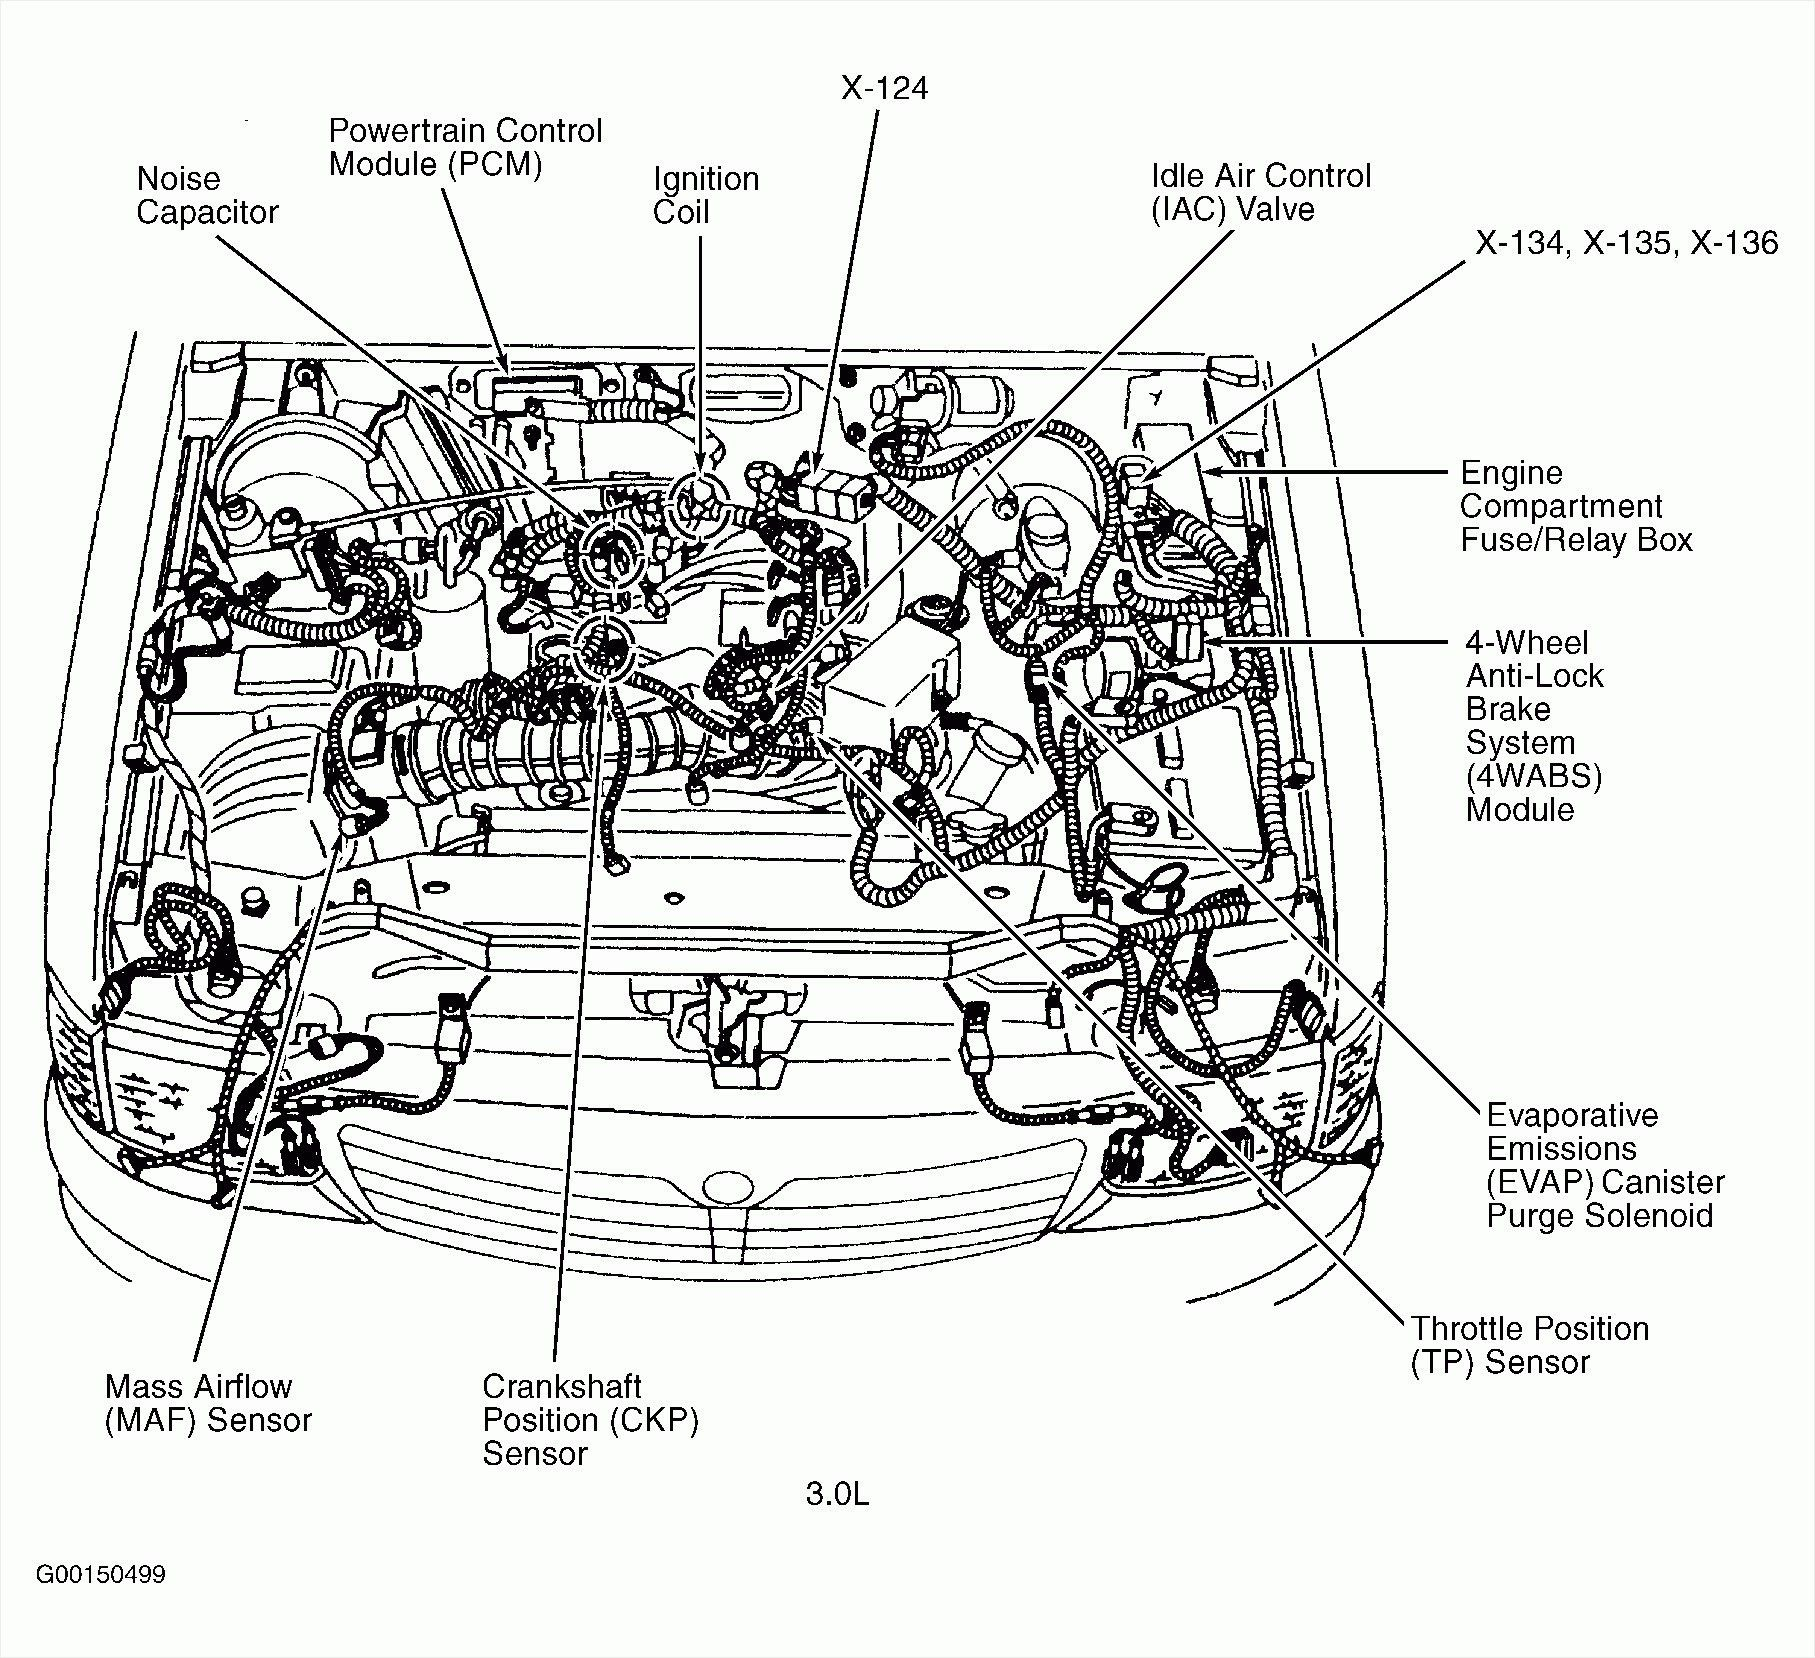 Pin By Trudy Mccoy On Diagram Sample Electrical Diagram Line